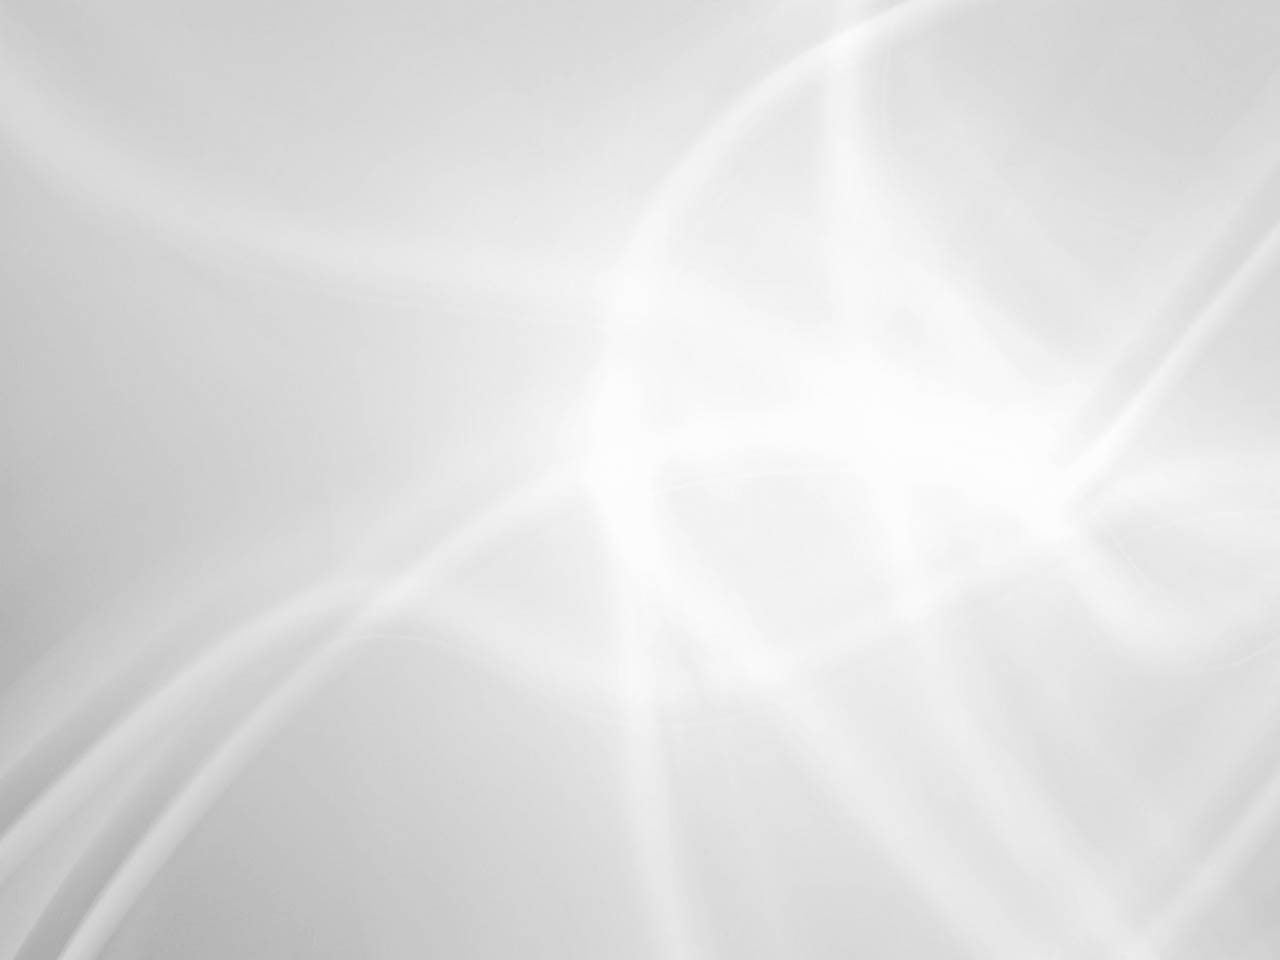 White Abstract Wallpapers HD Download 1280x960